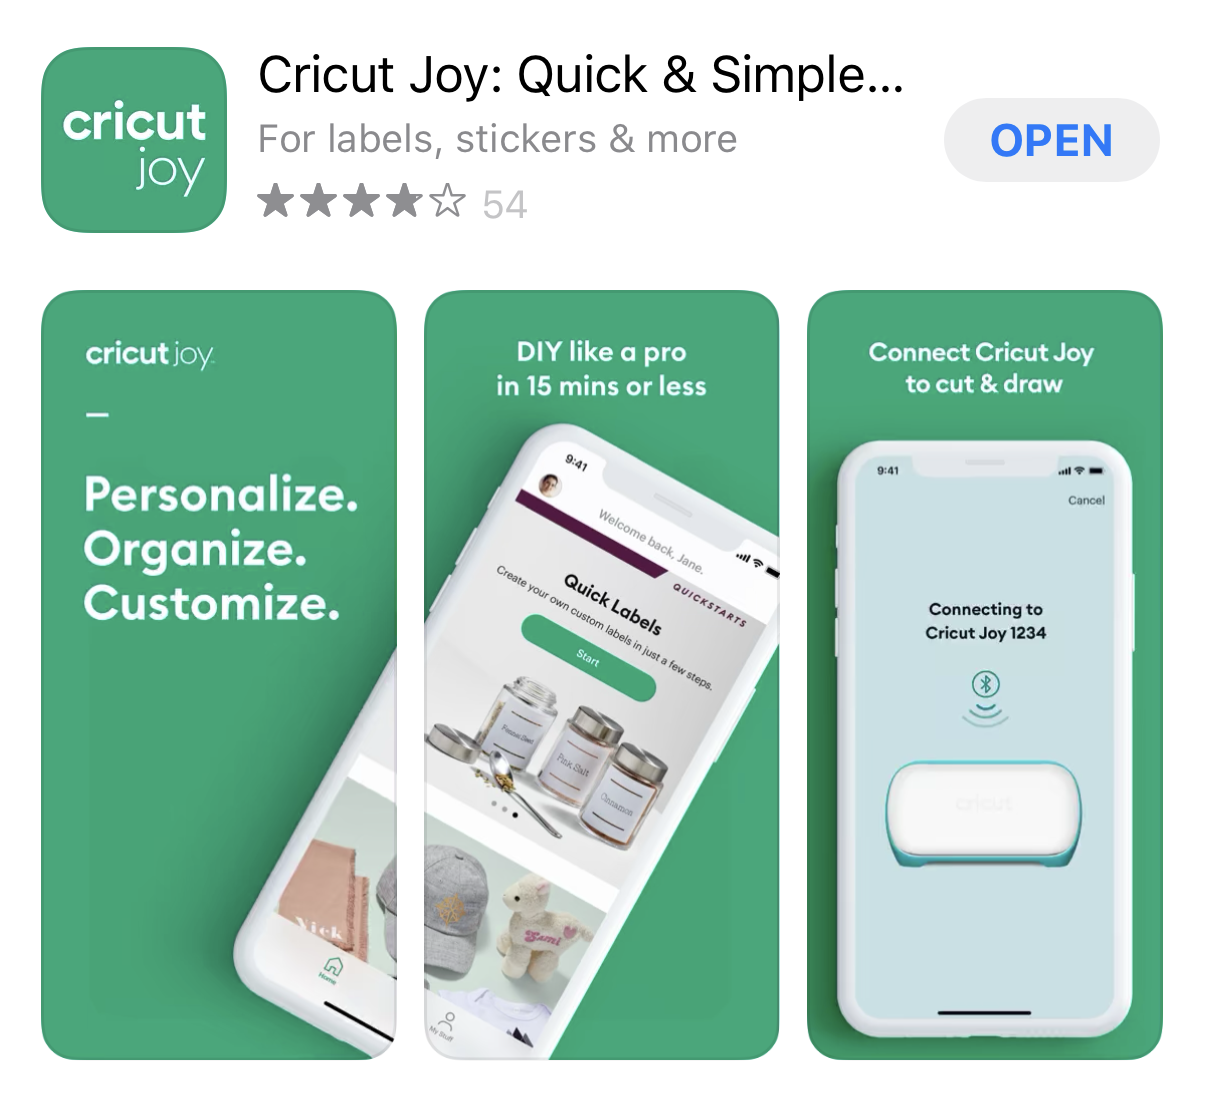 Cricut Joy app in the iOS app store.